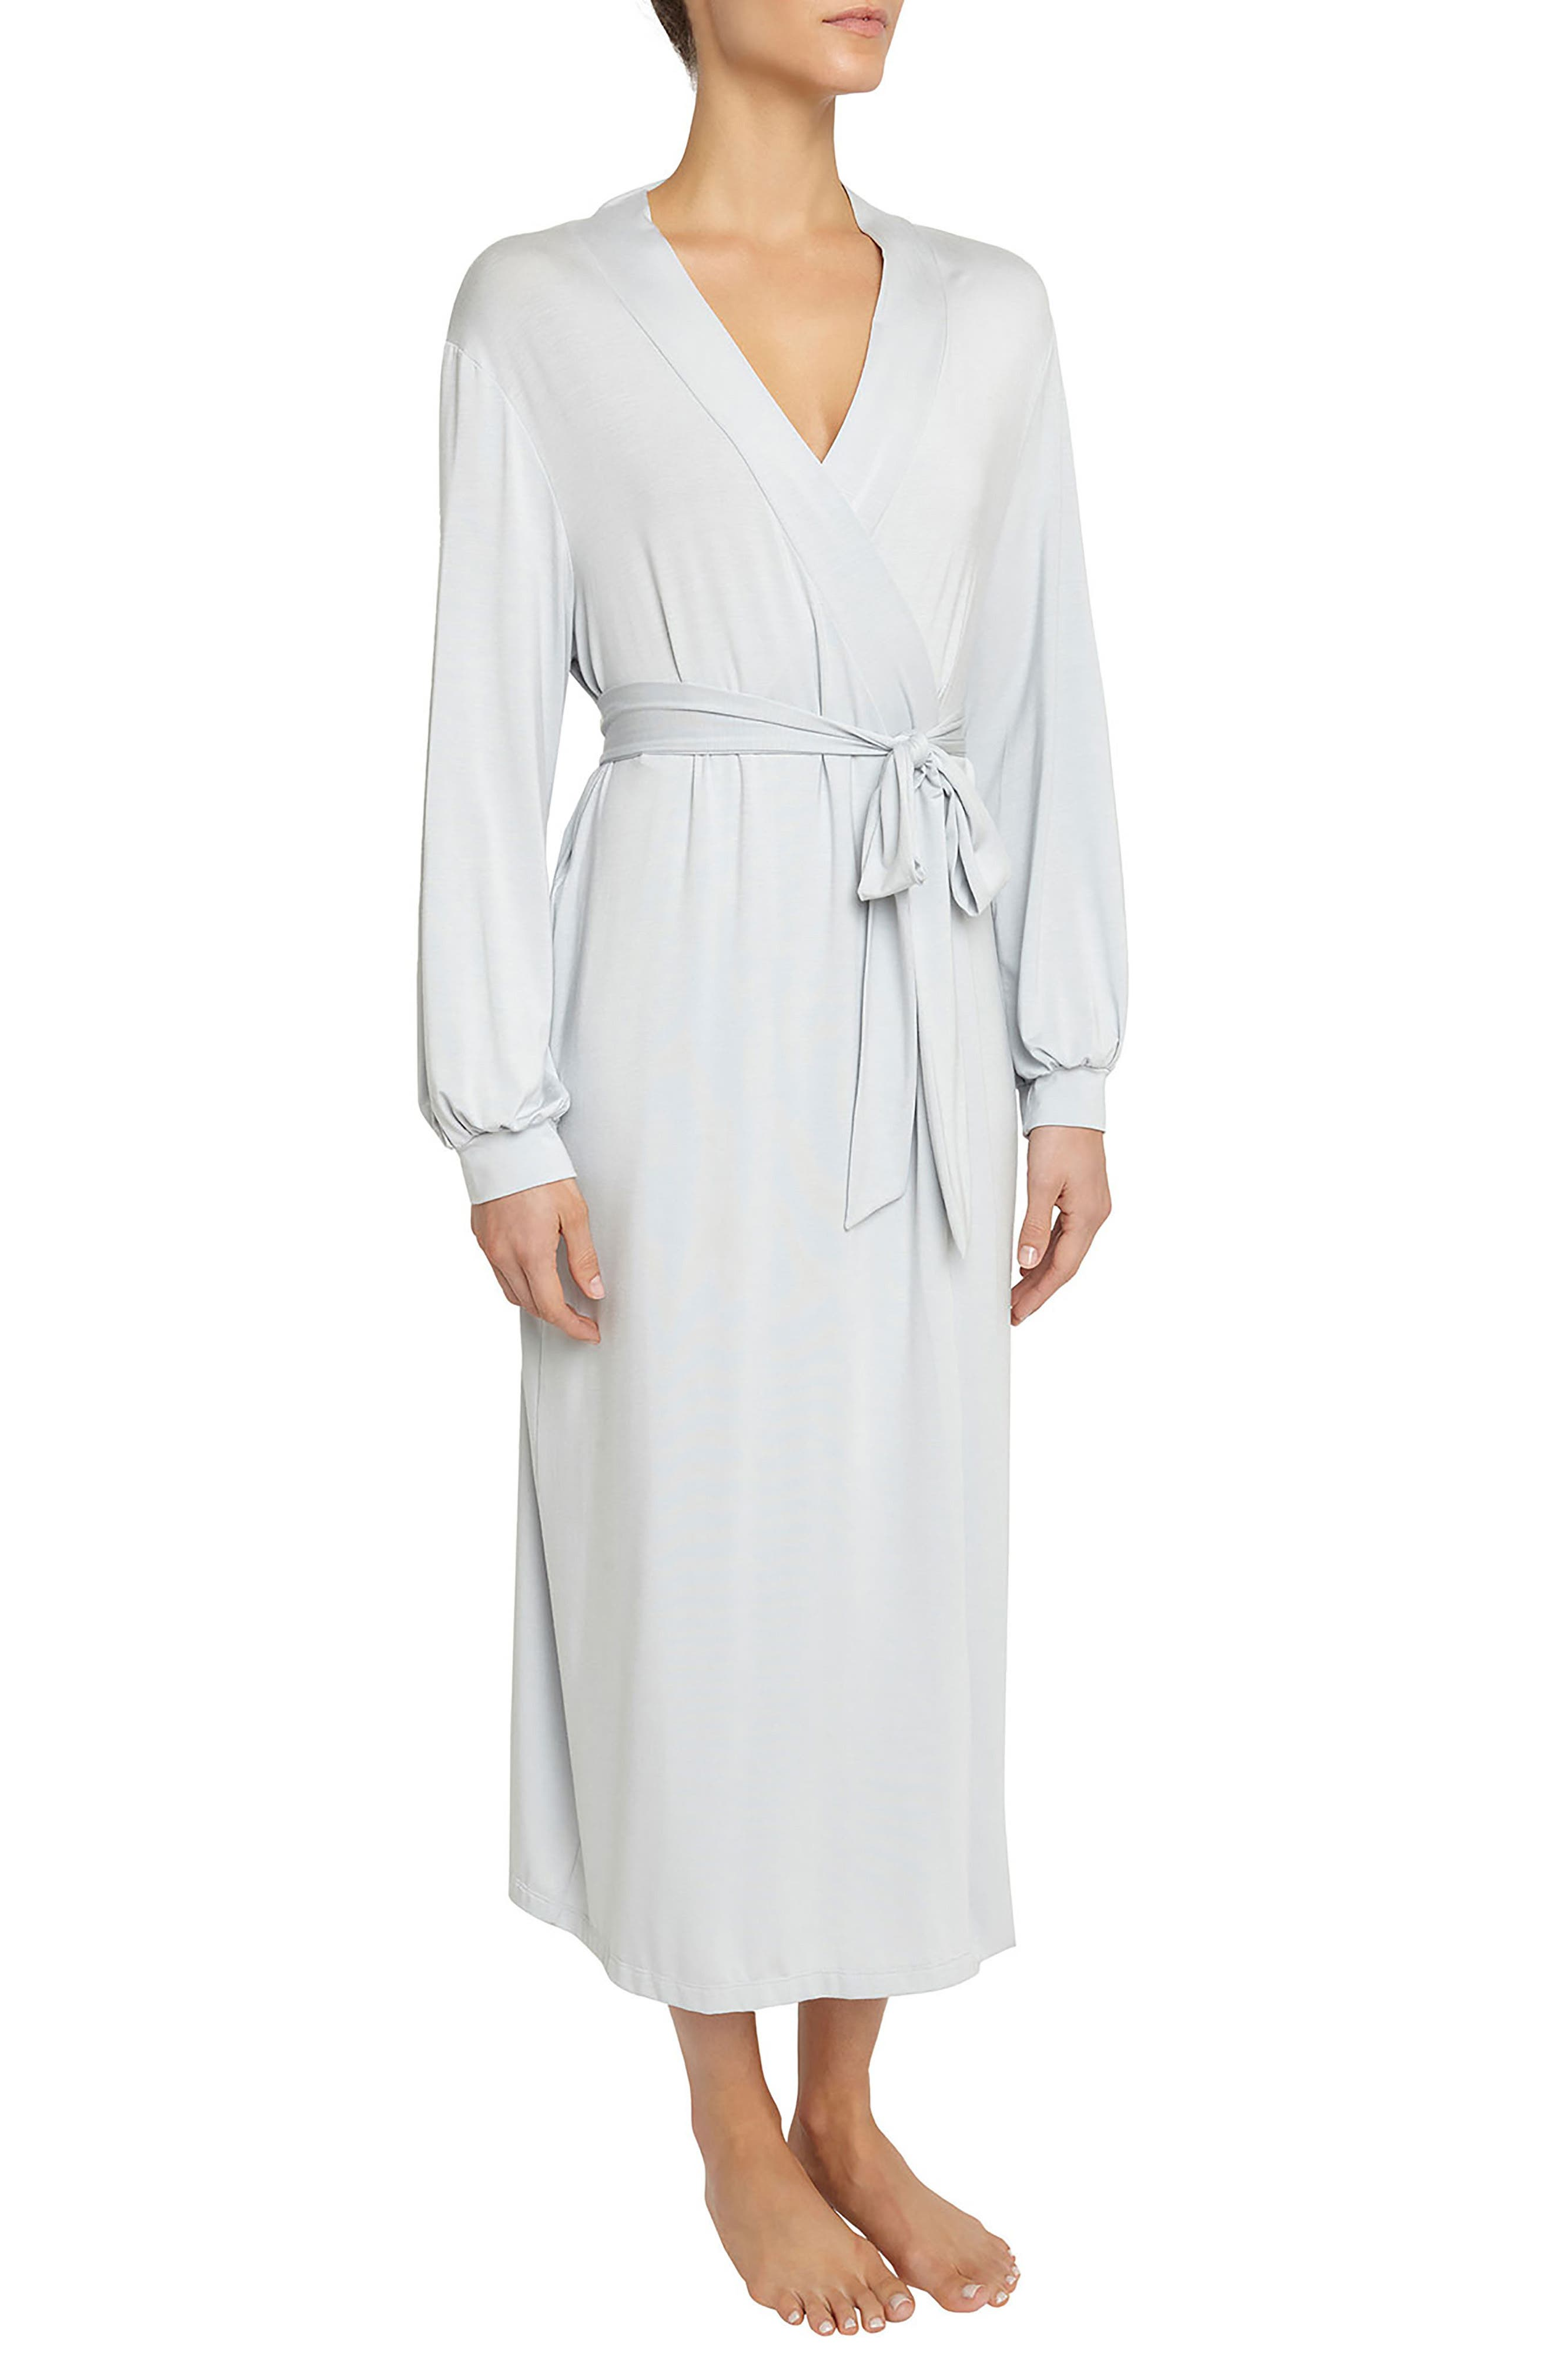 Elvia Robe,                         Main,                         color, 458